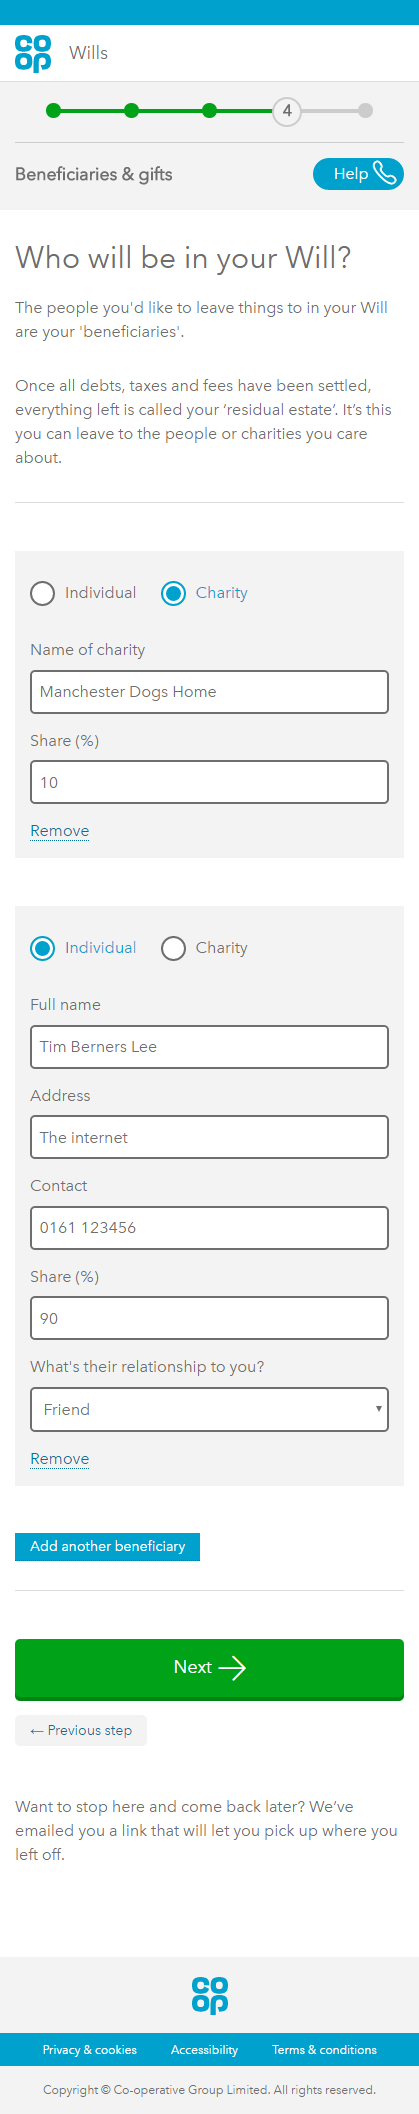 Screenshot of an earlier iteration of the service. Instead of 'nesting', the user sees all the questions at the same time including details about options that aren't relevant to them.